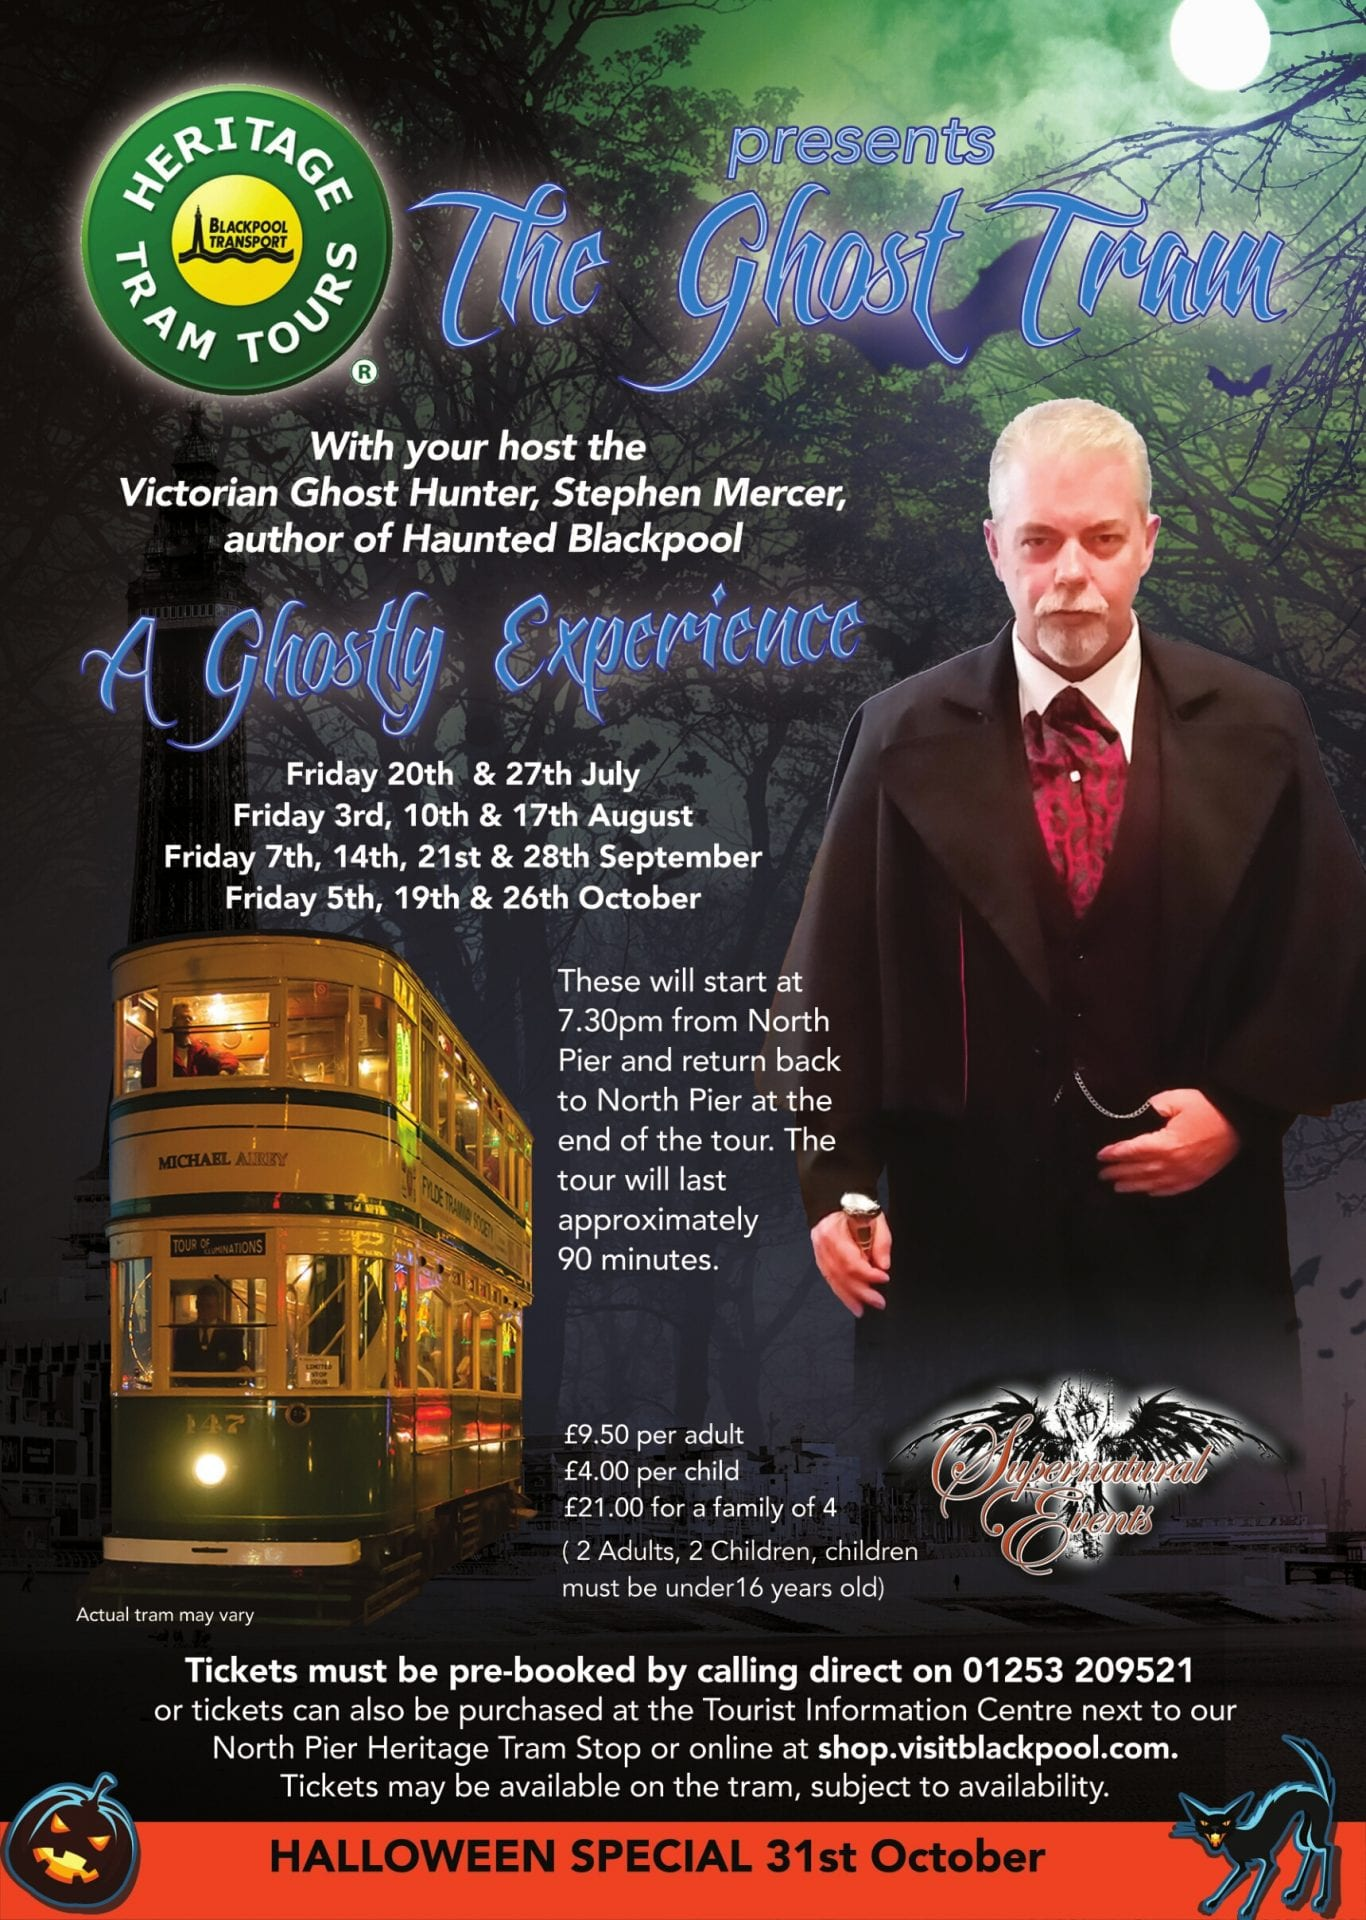 Ghost tours with Blackpool Heritage Trams